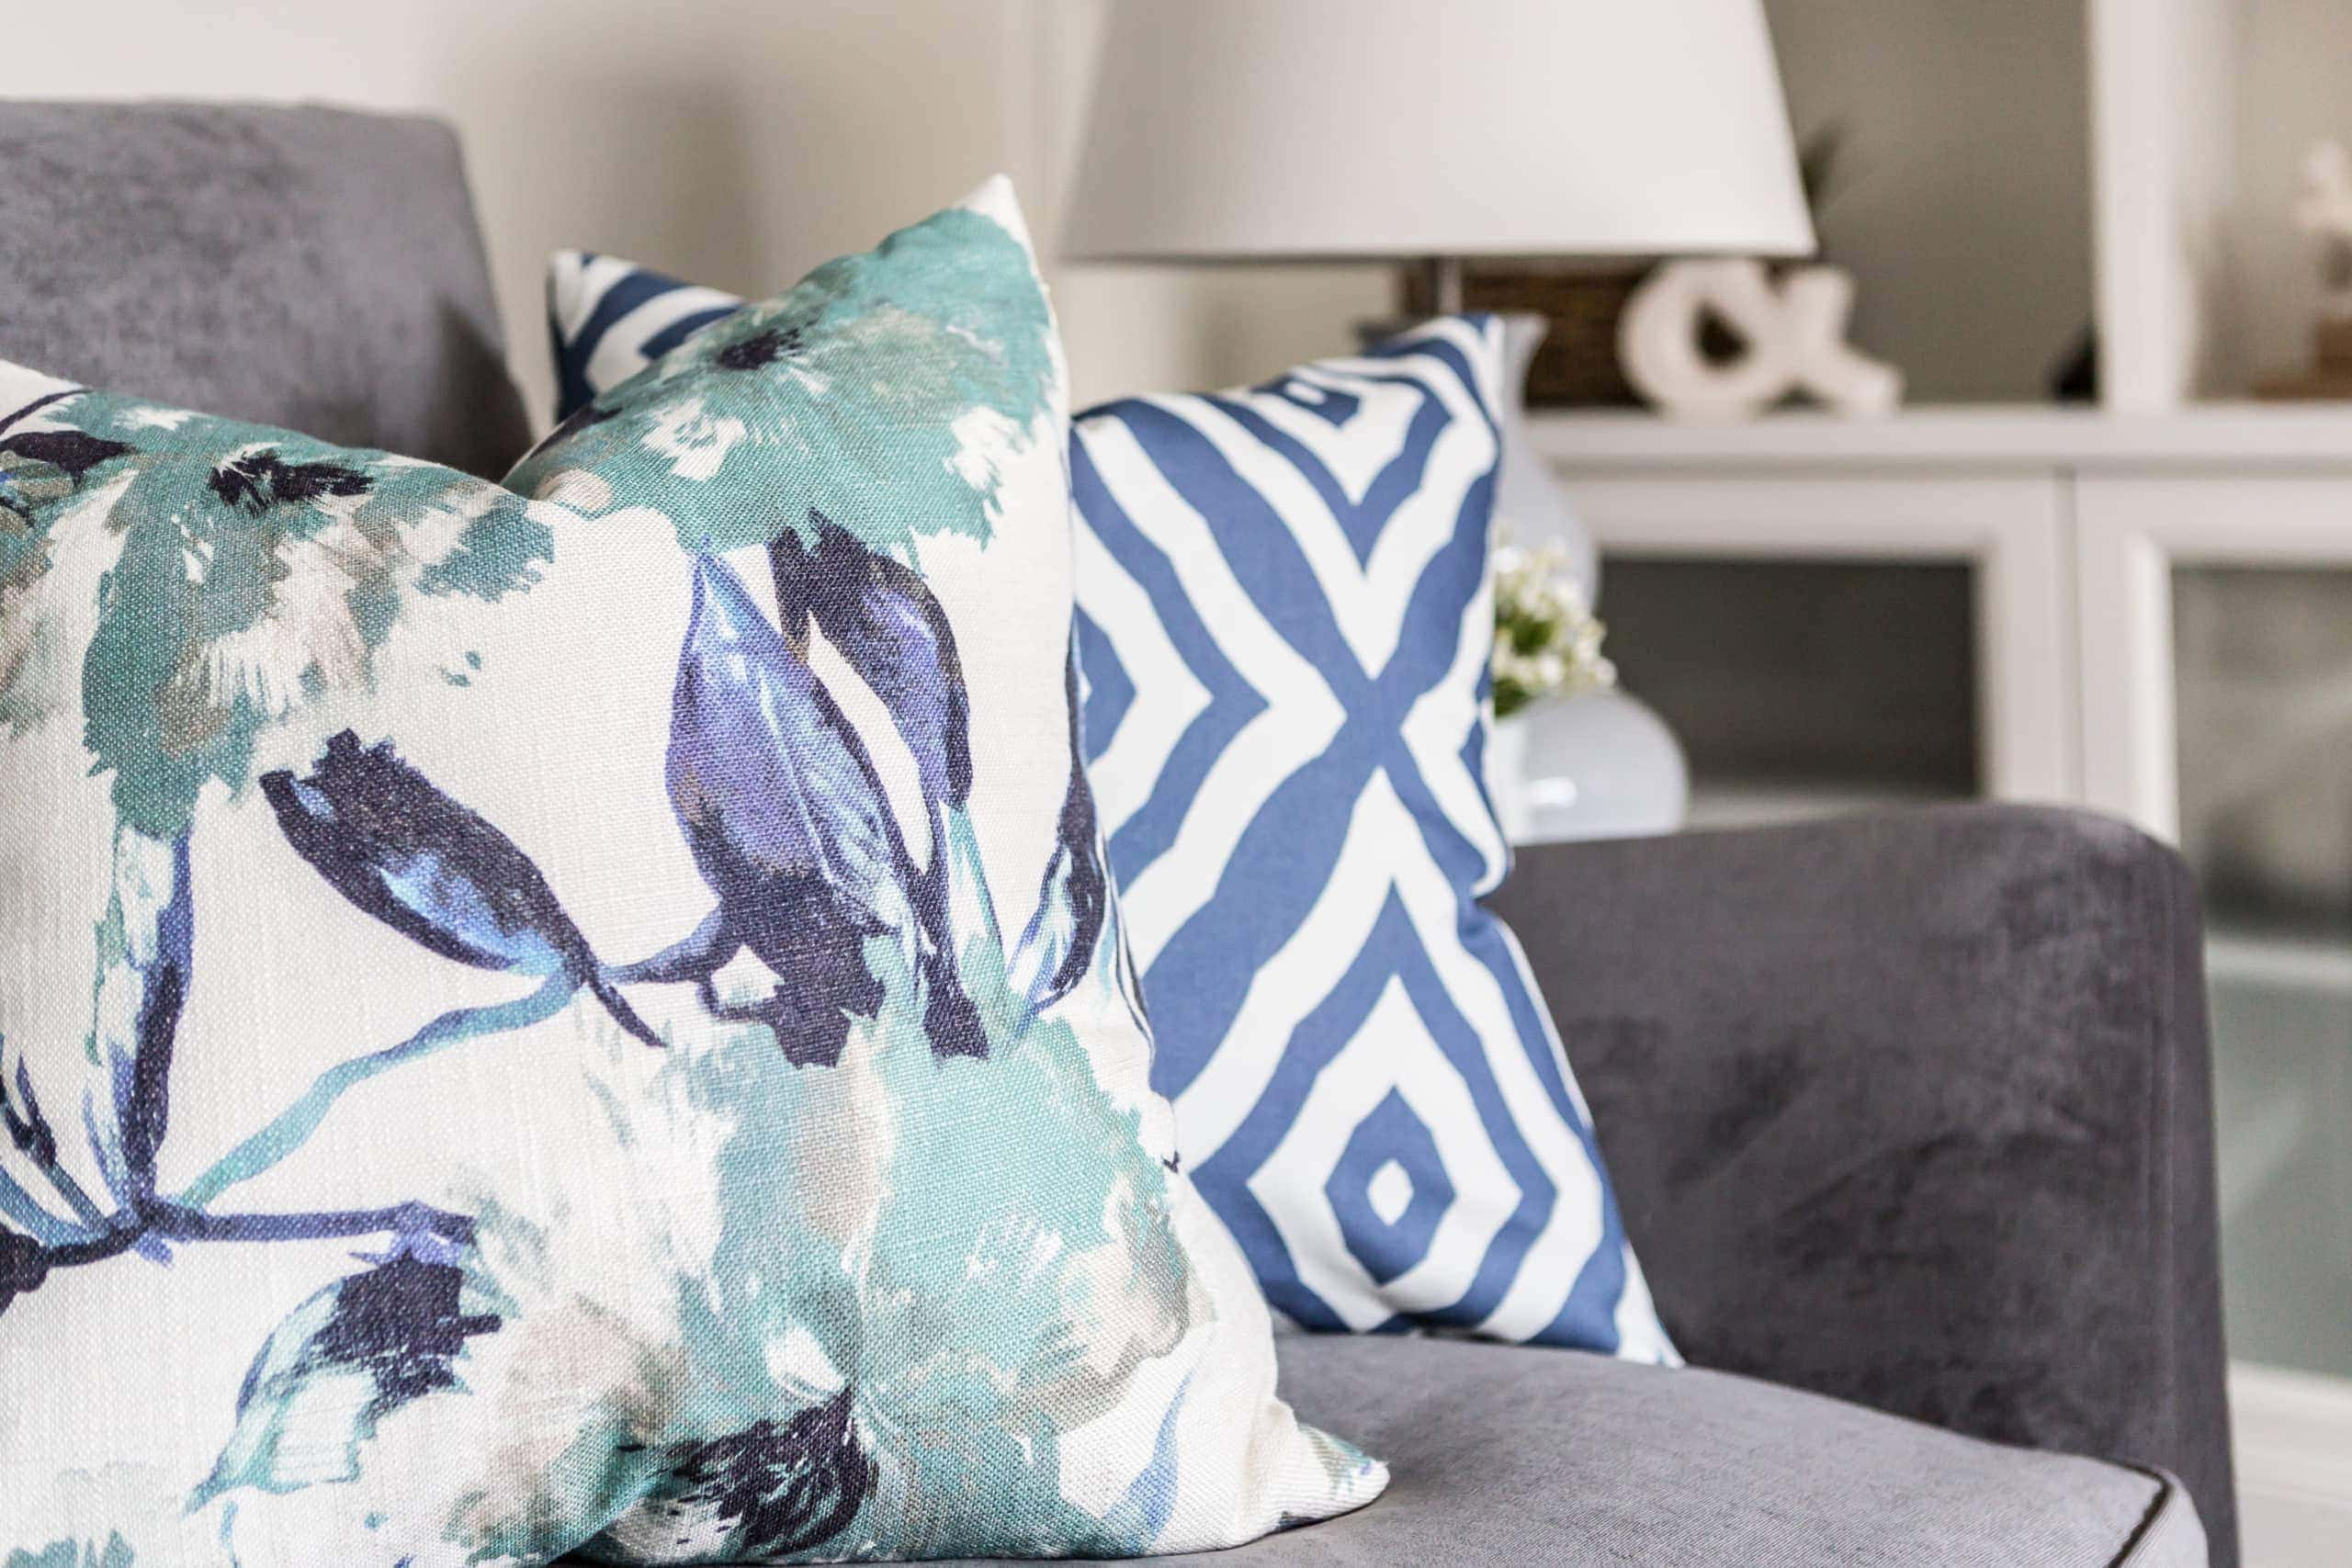 Patterned pillows on a couch